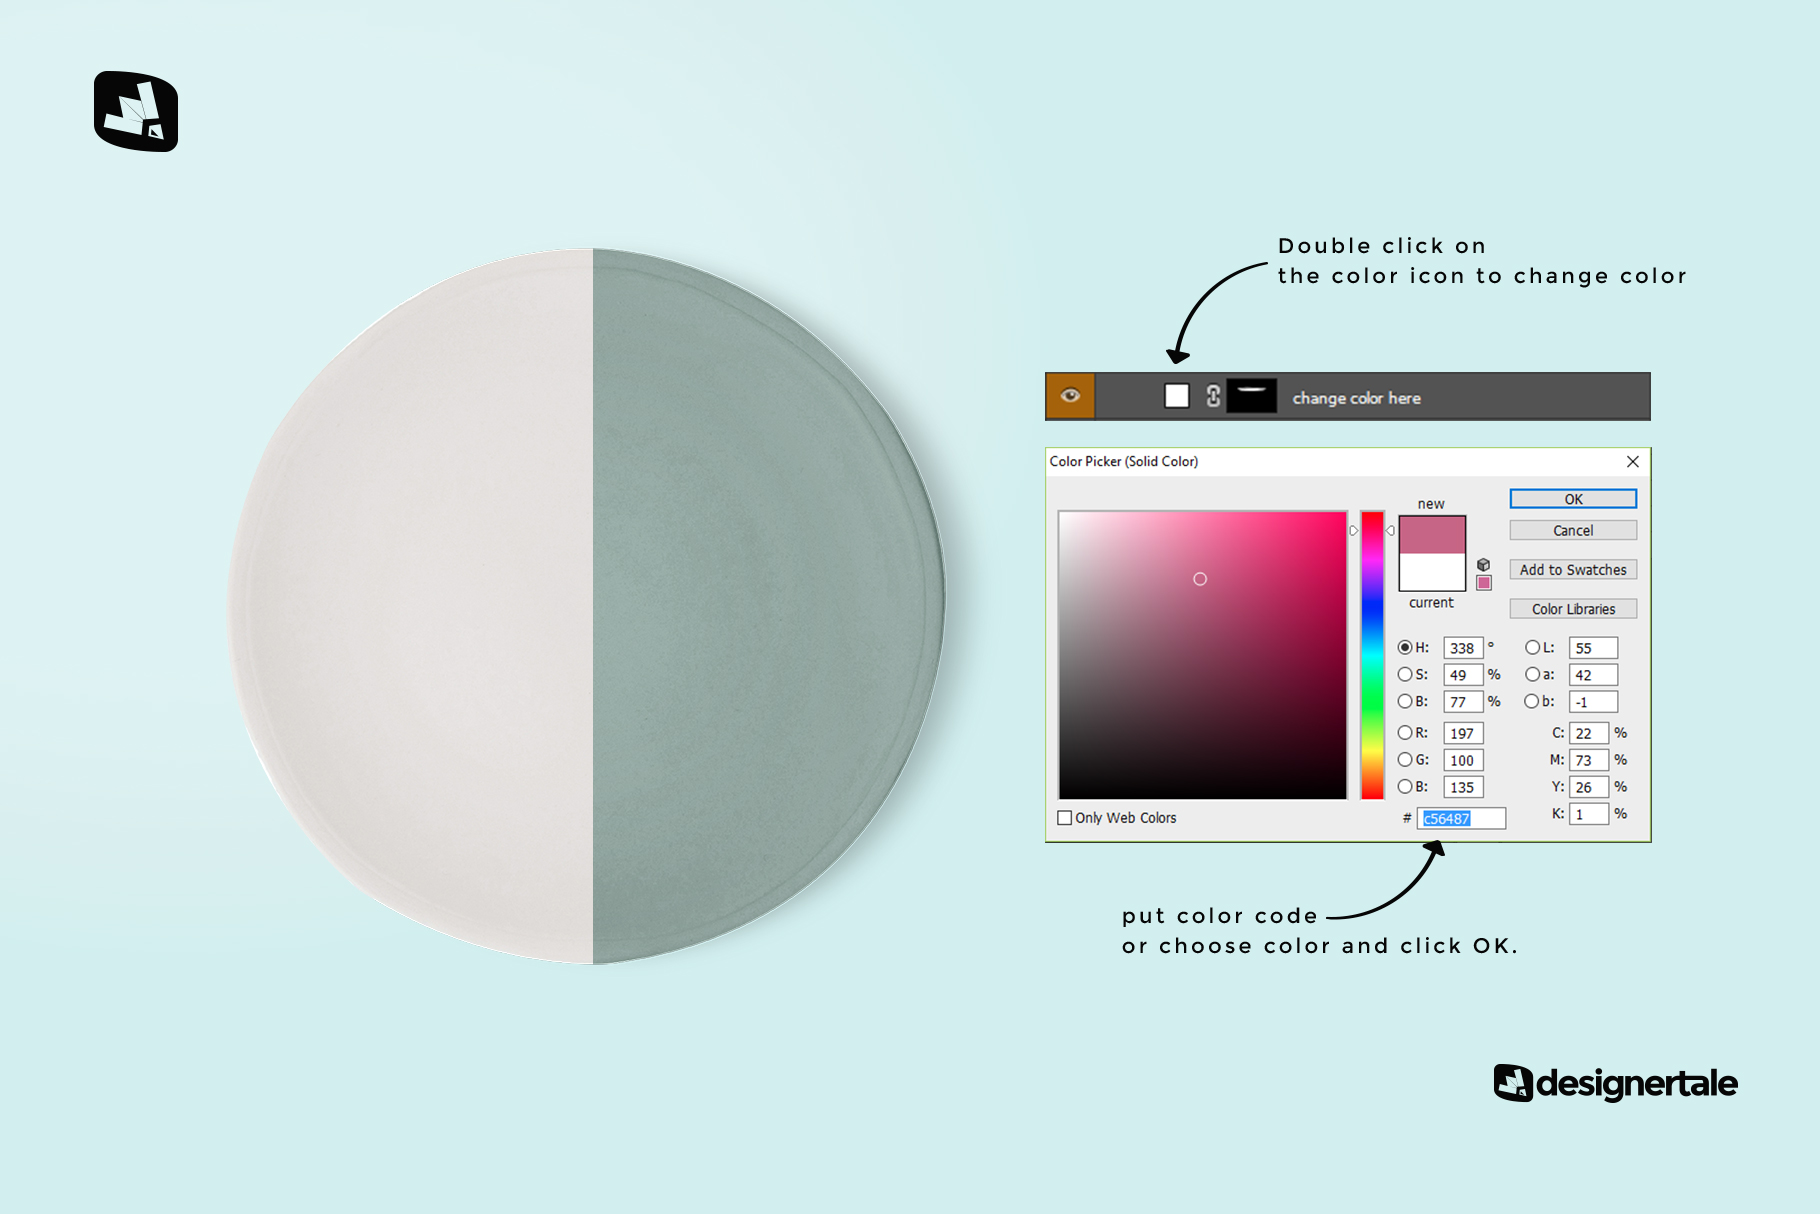 how to change color of the top view ceramic dish mockup